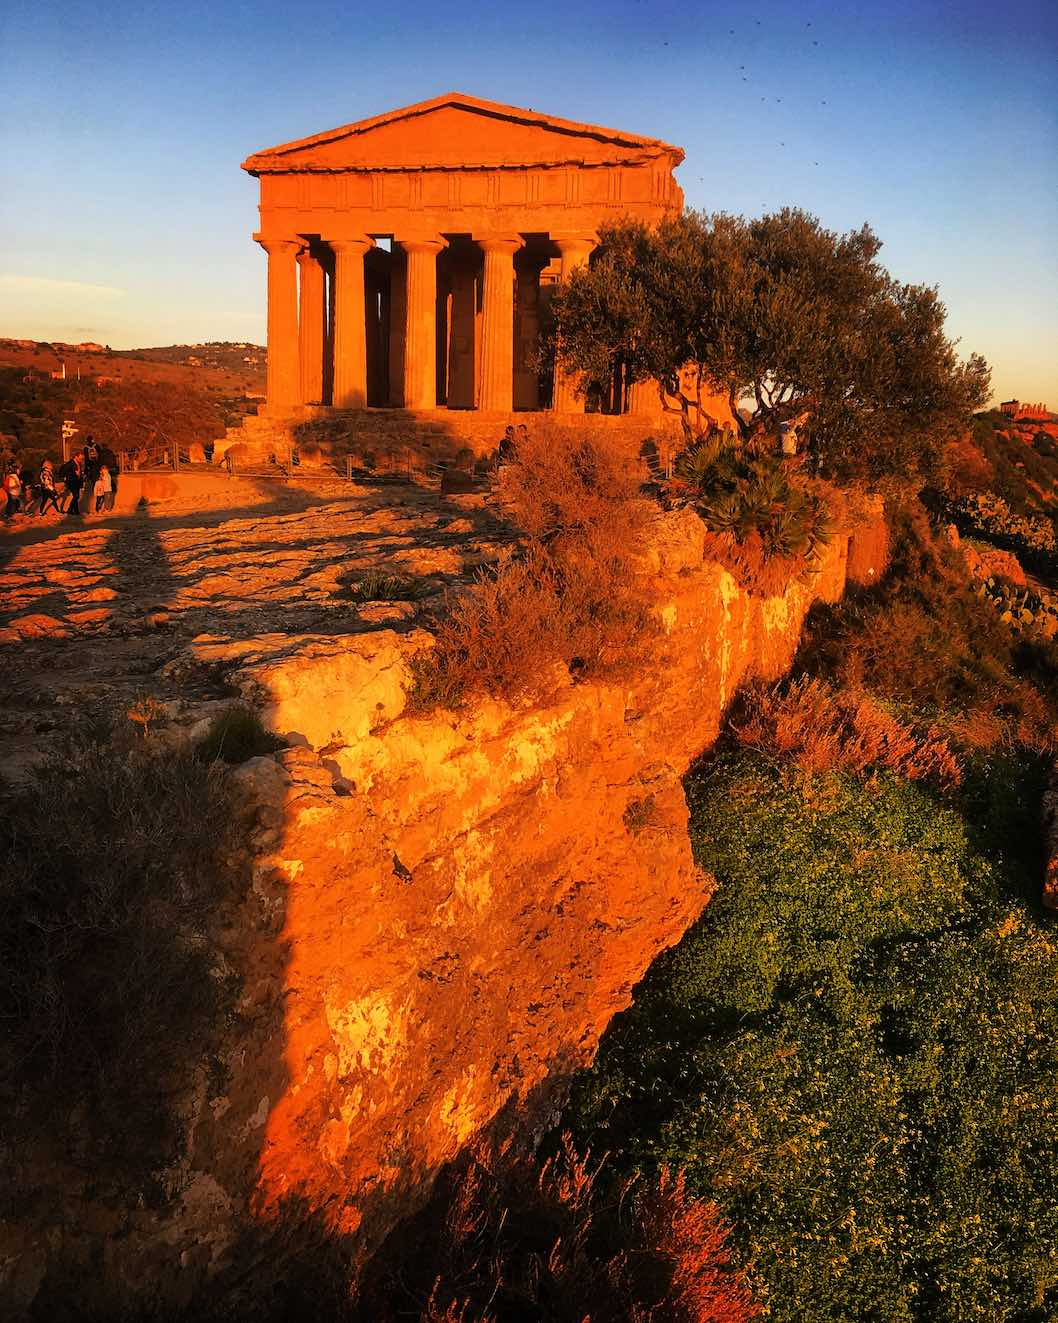 Sunset at the Tempio della Concordia, the largest and best-preserved Doric temple in Sicily, in the Valle dei Templi in Agrigento, Sicily